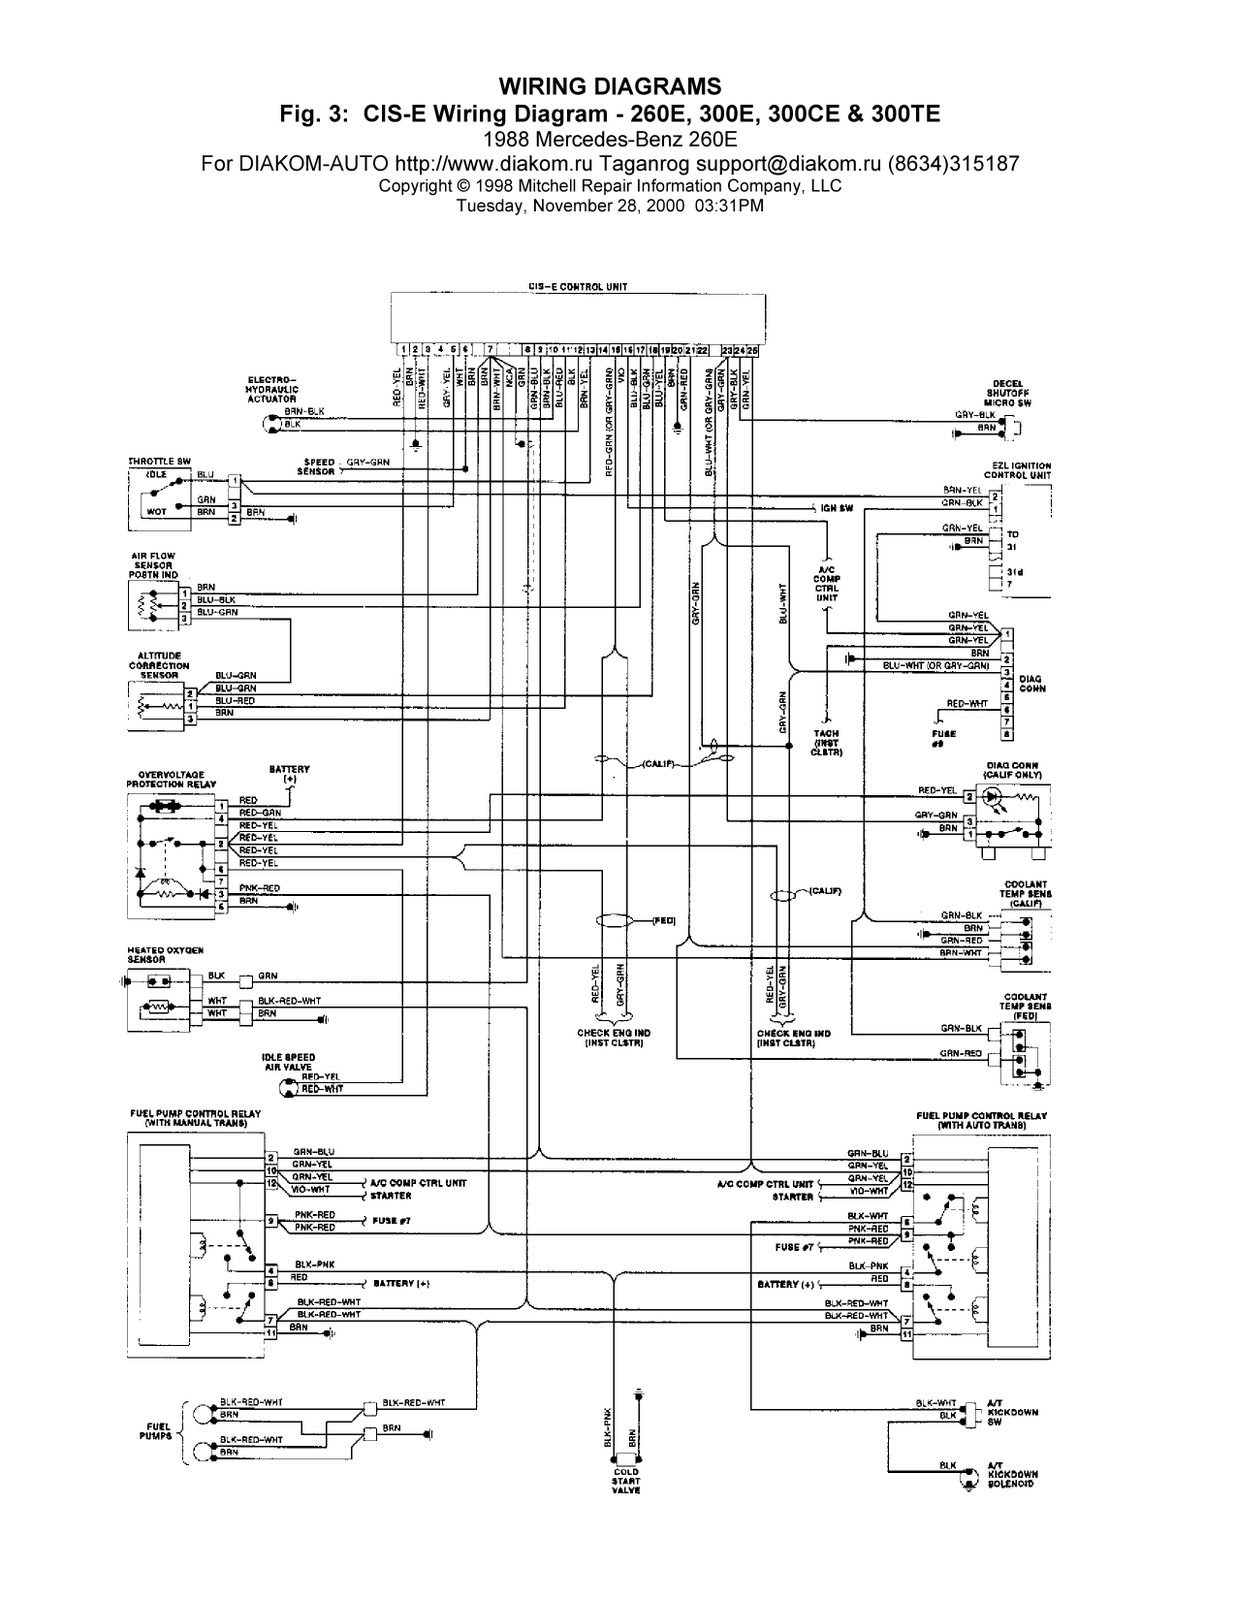 Mercedes Benz Wiring Harness Diagram Example Electrical C320 Engine R129 Repair